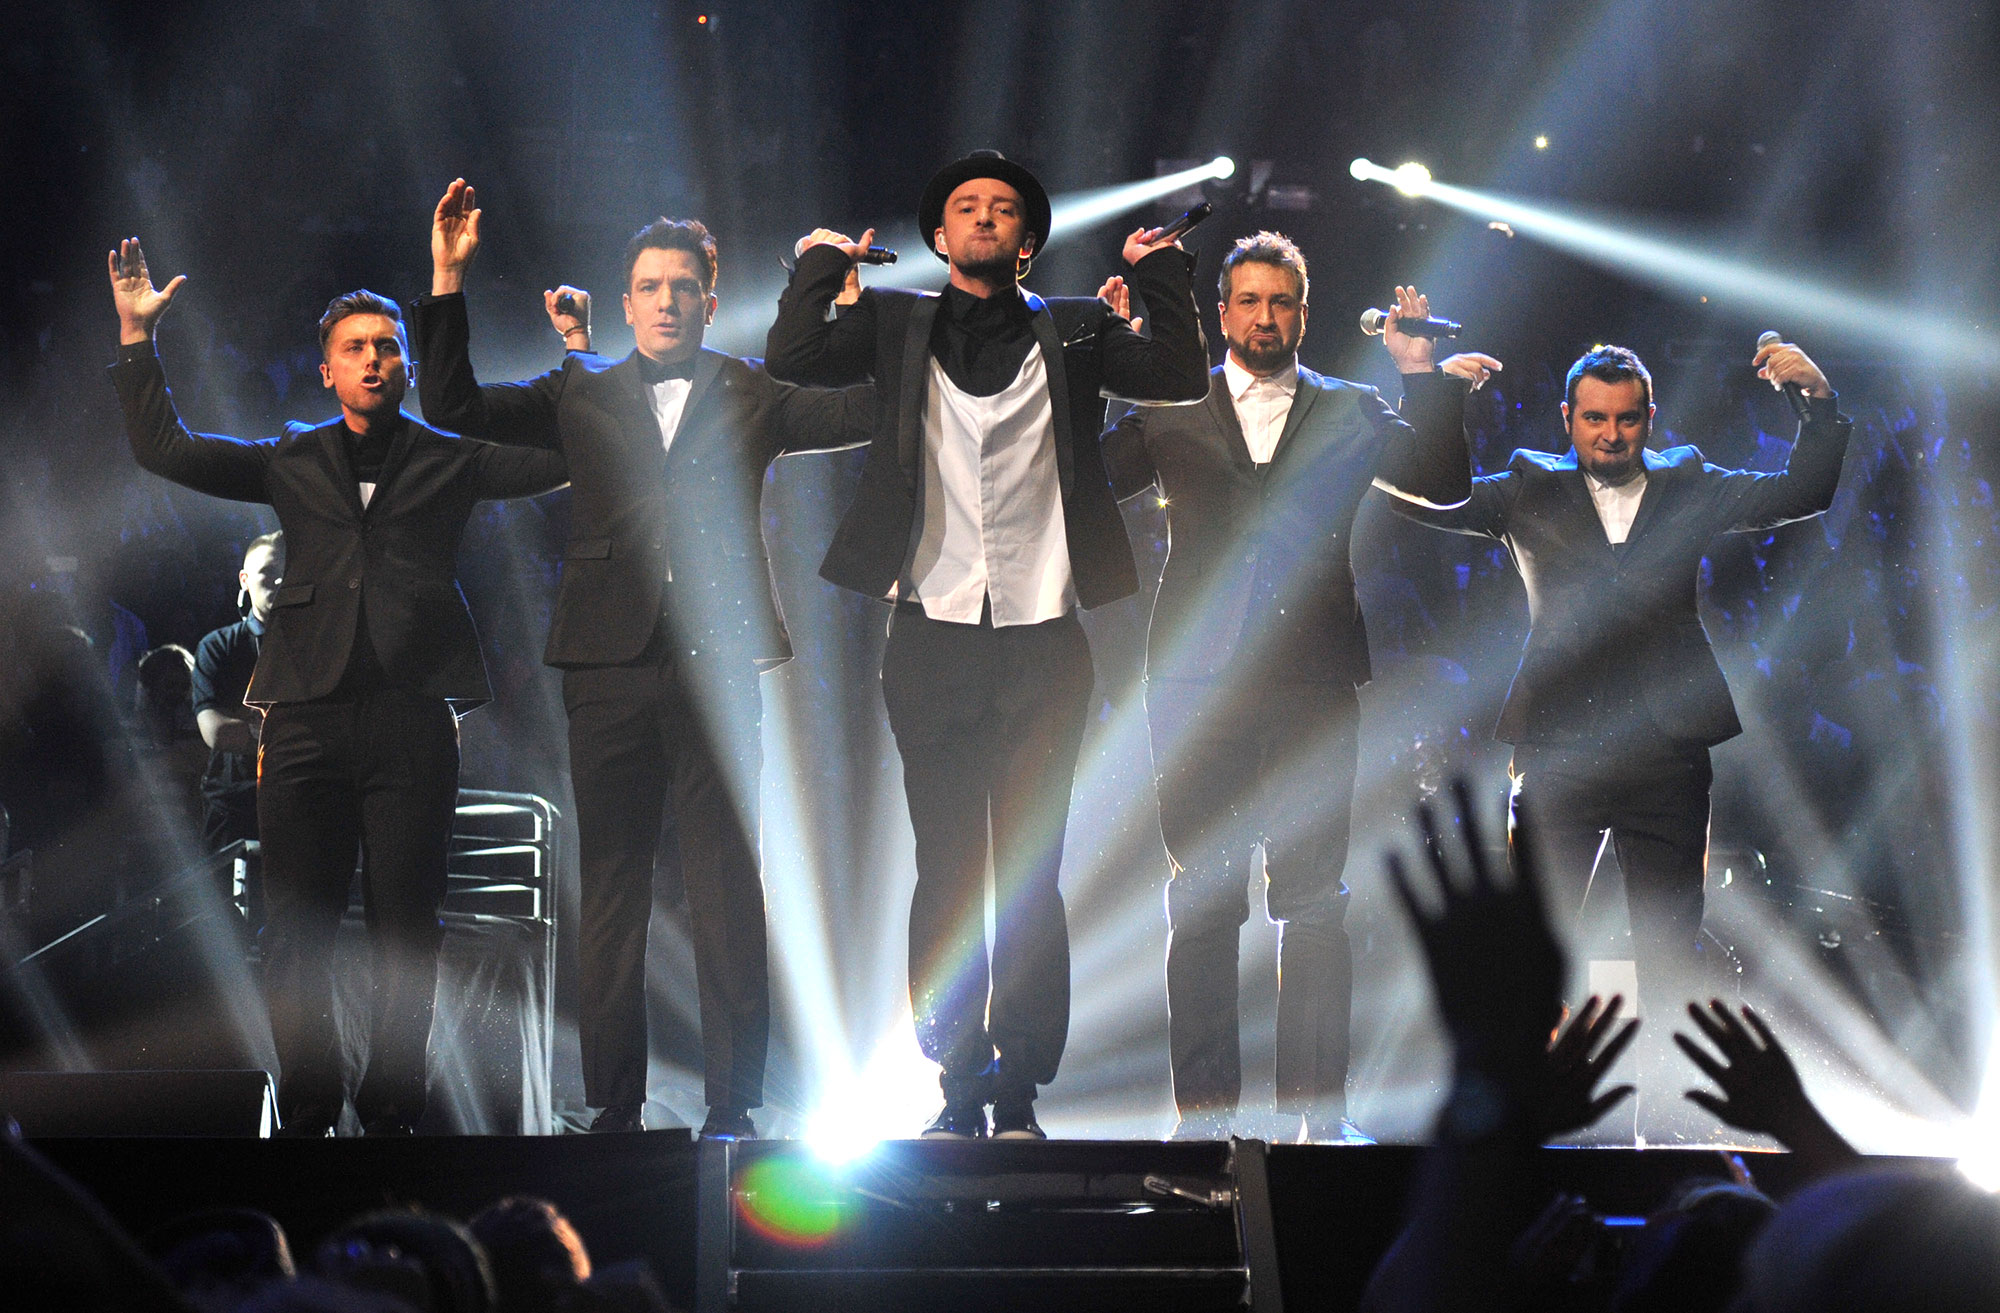 Brian Littrell Shades 'N Sync: They 'Definitely' Need Justin Timberlake - 'N Sync performs during the 2013 MTV Video Music Awards at the Barclays Center on August 25, 2013 in the Brooklyn borough of New York City.